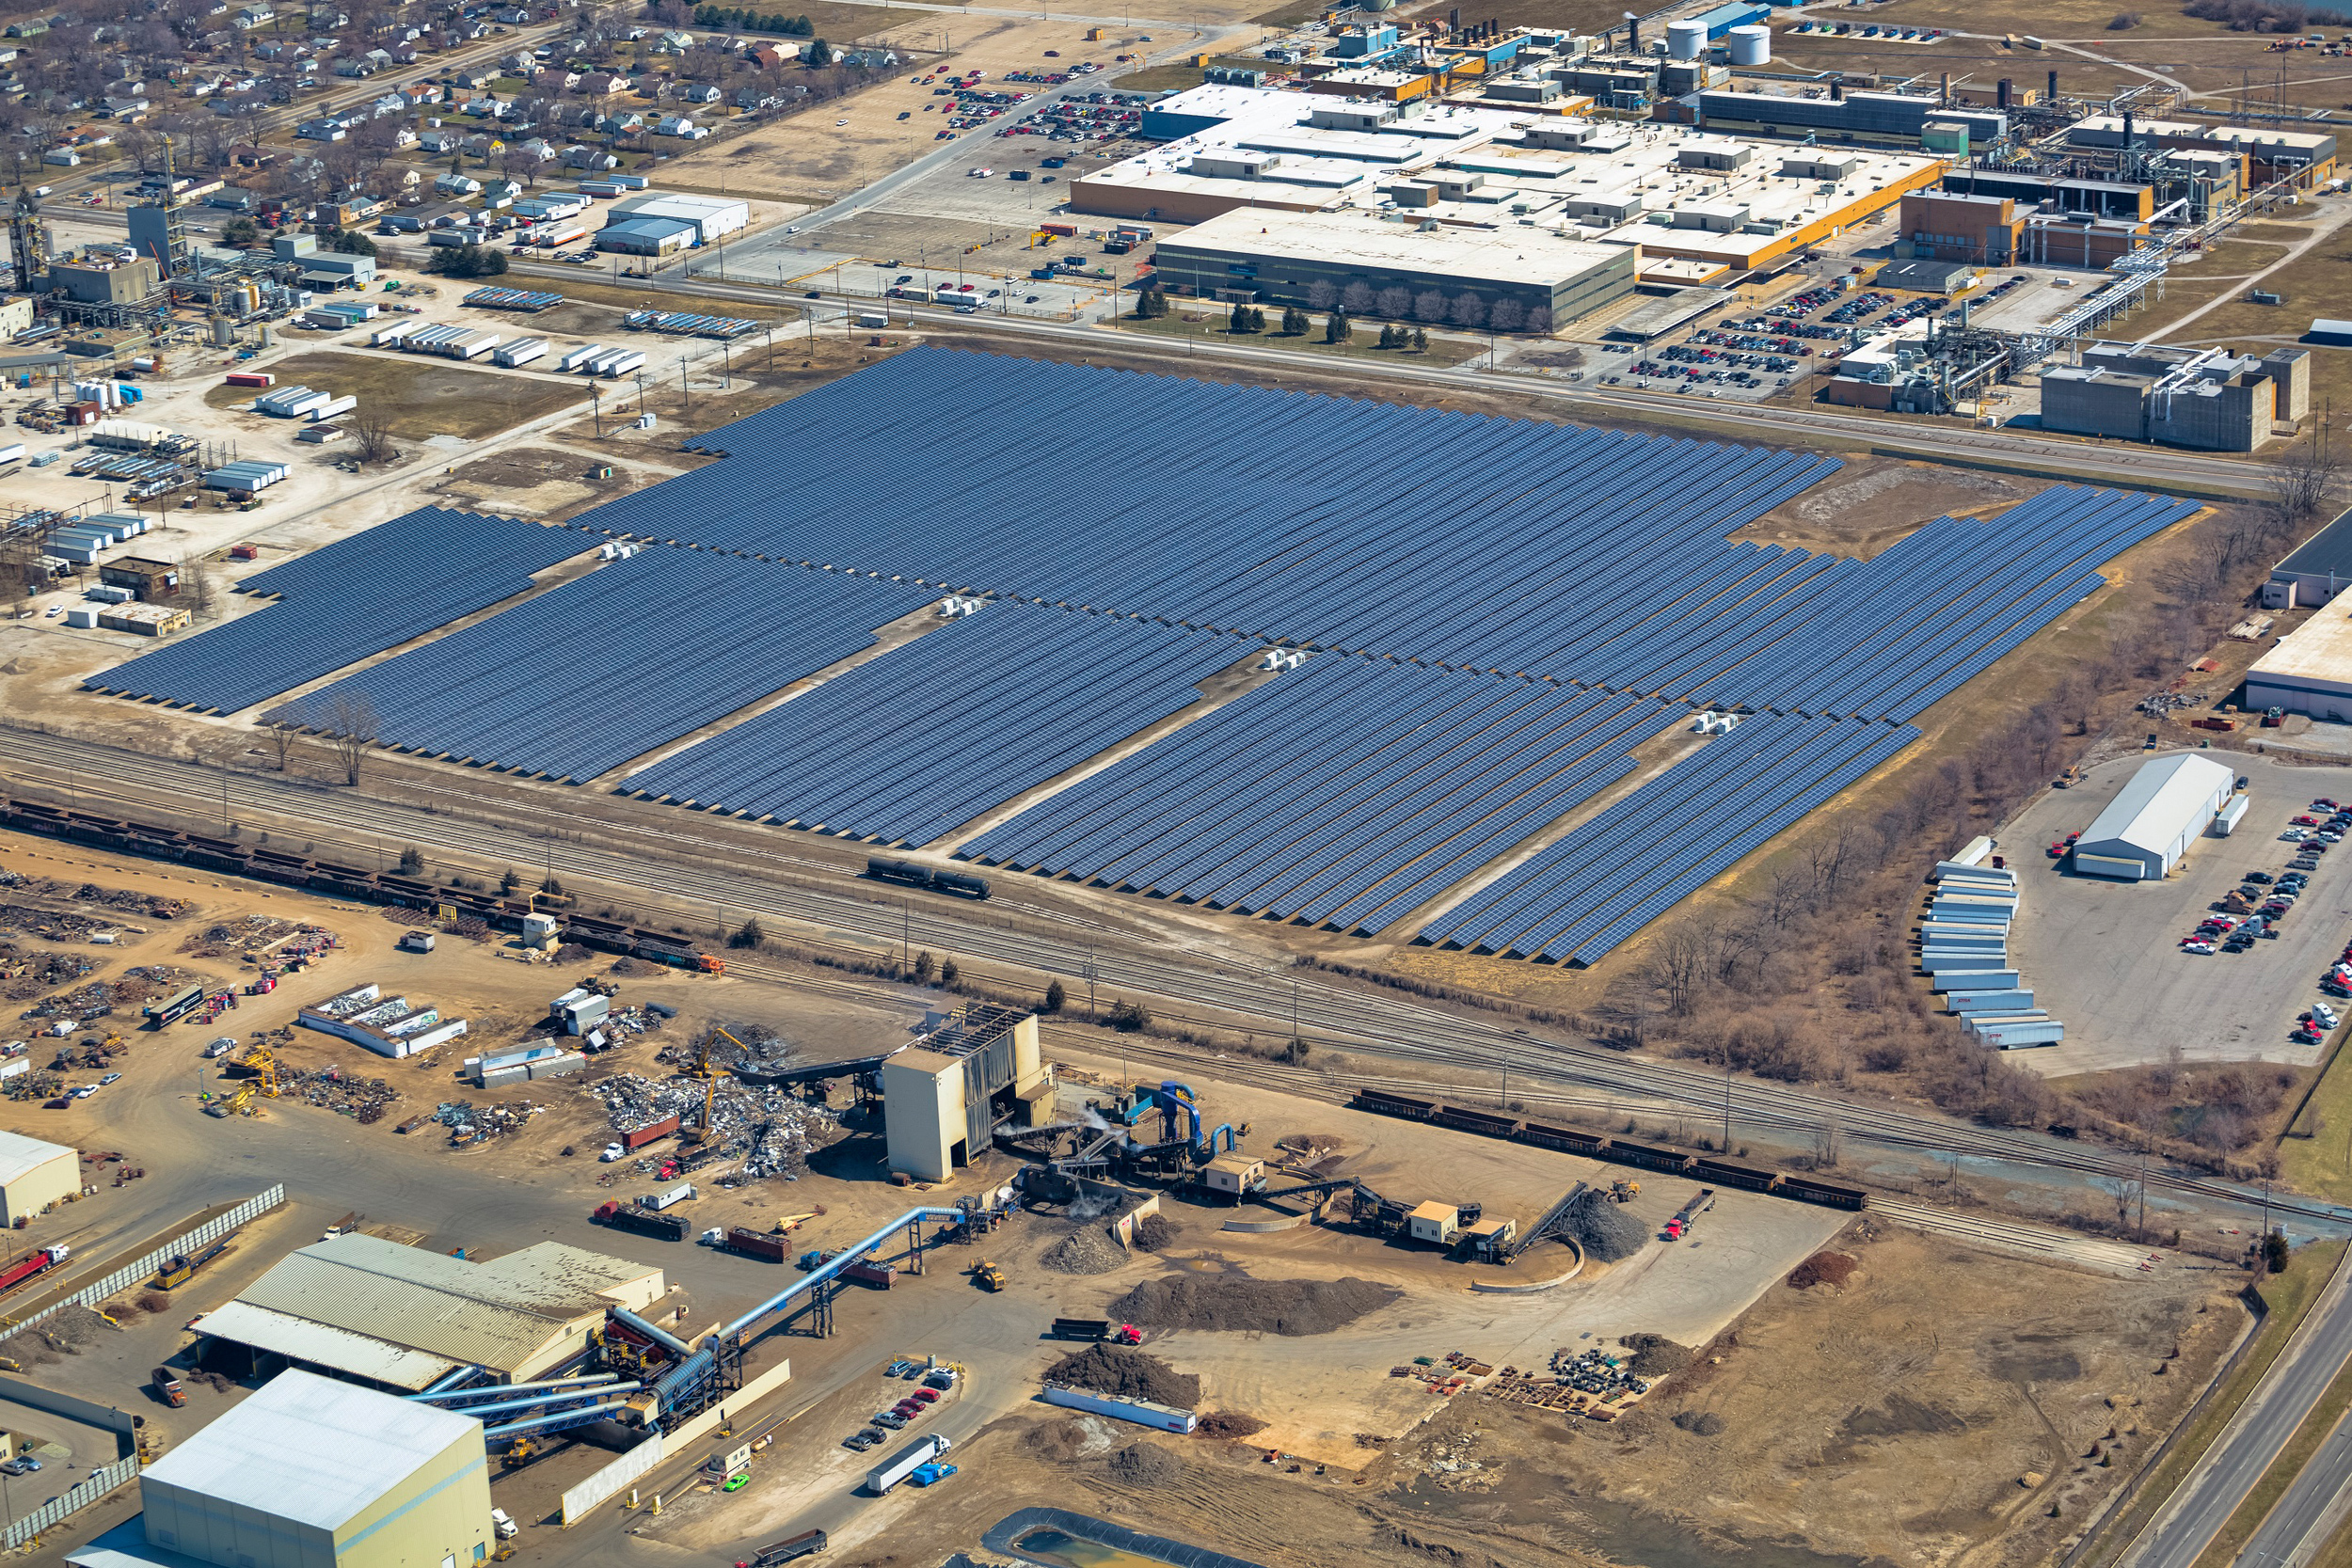 Superfund Site Solar Farm